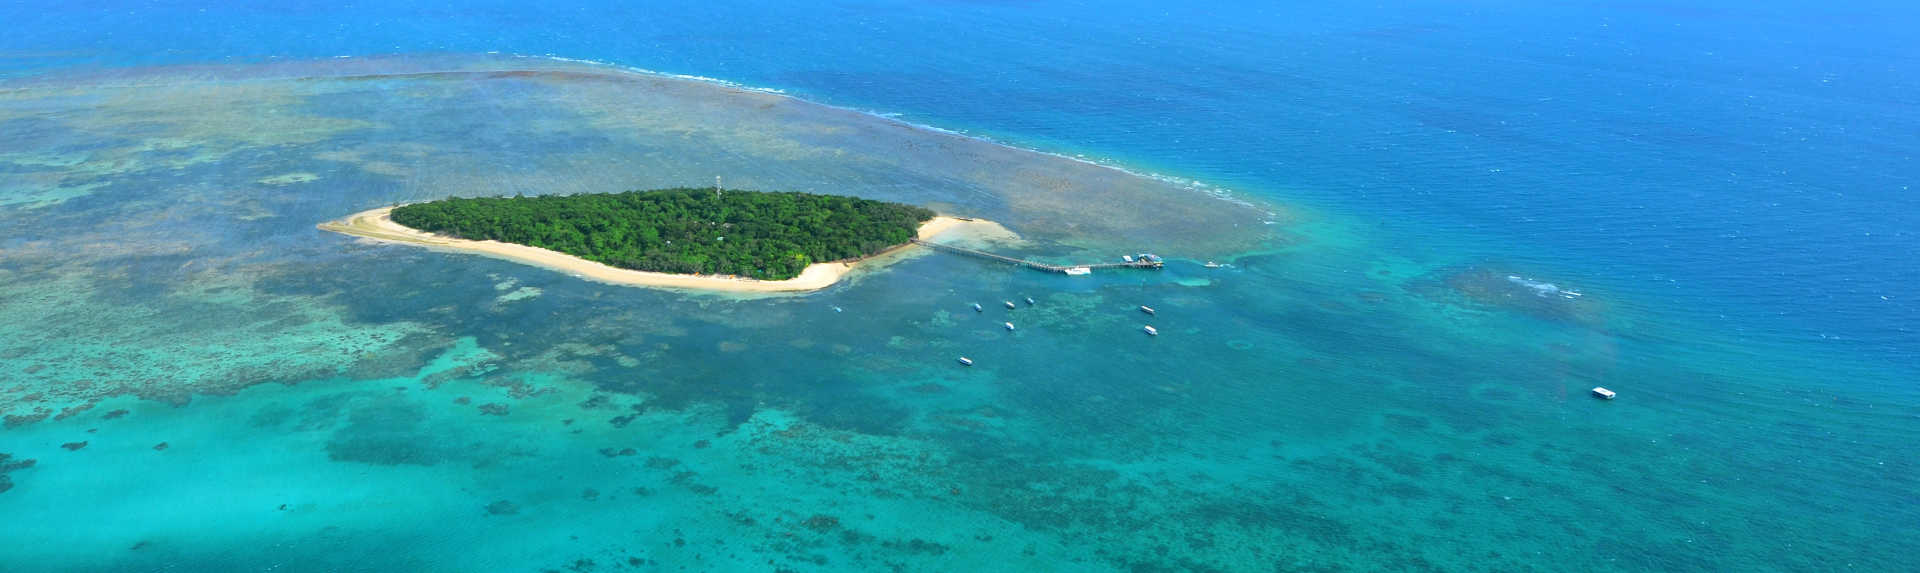 How much does it cost to go to Green Island?